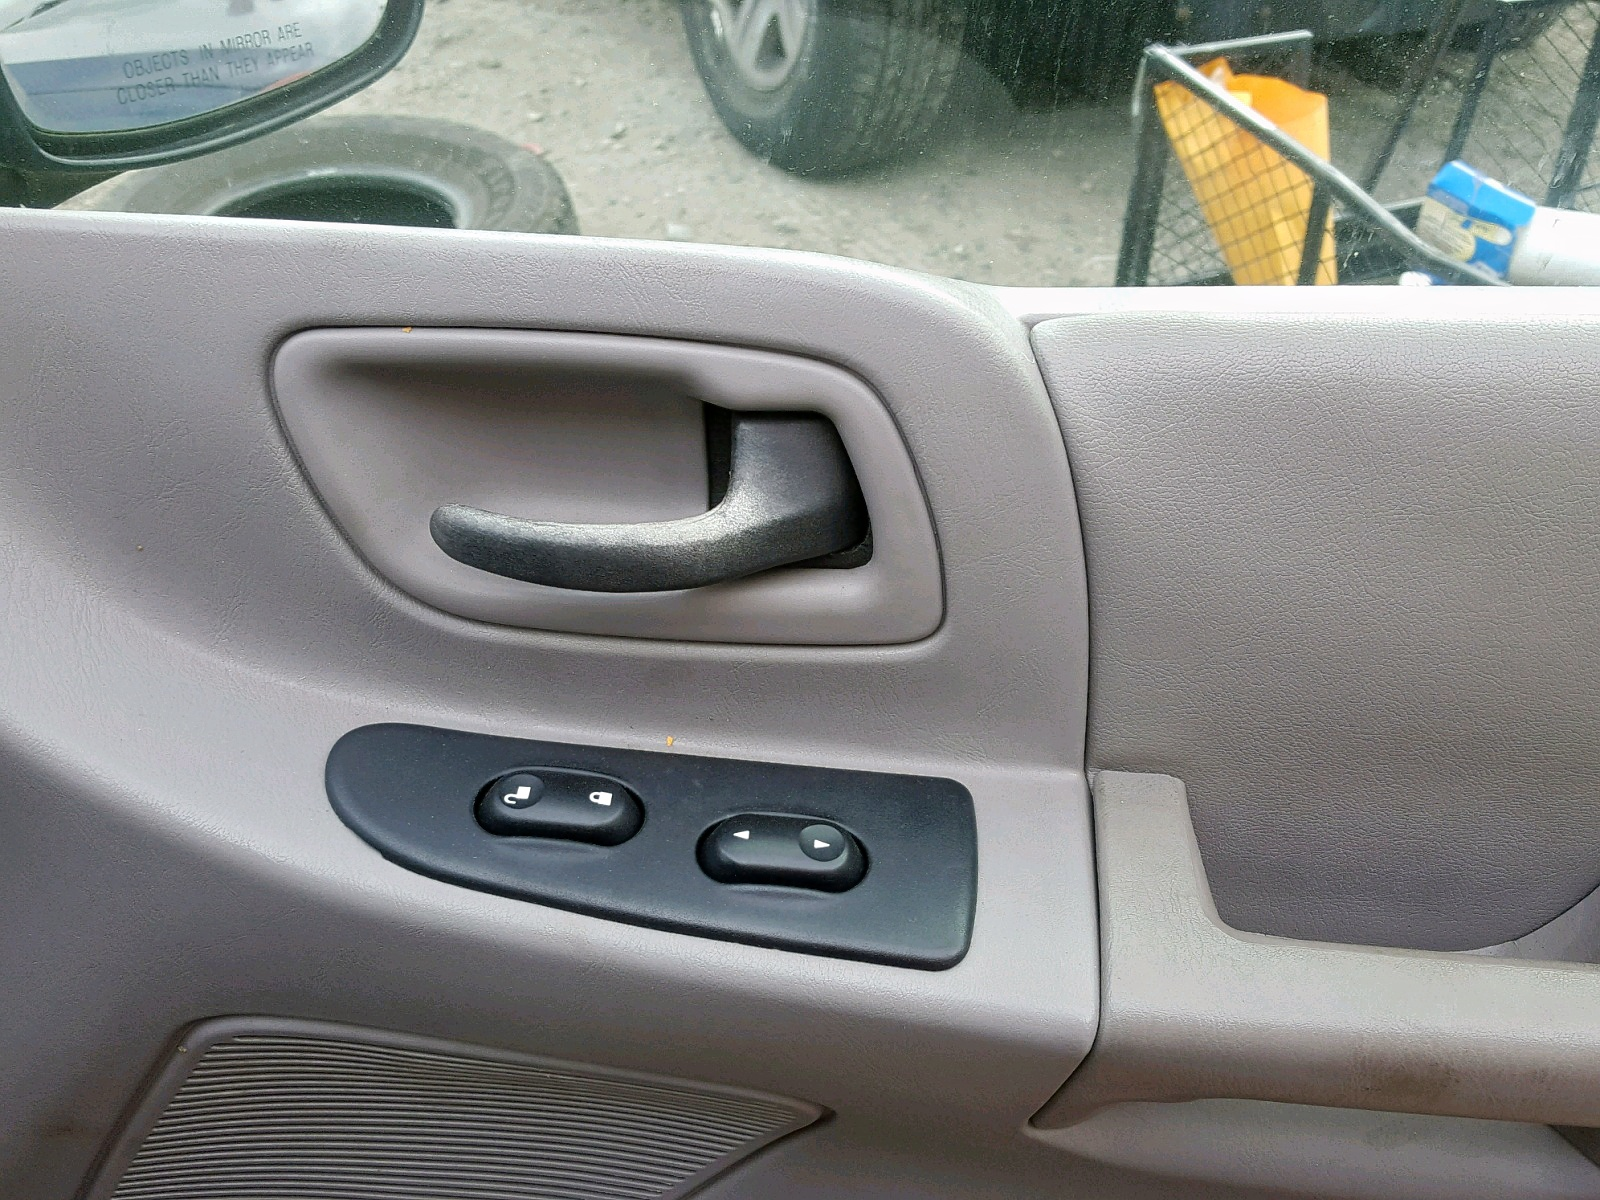 hight resolution of  2fmza51462ba72613 2002 ford windstar l 3 8l engine view 2fmza51462ba72613